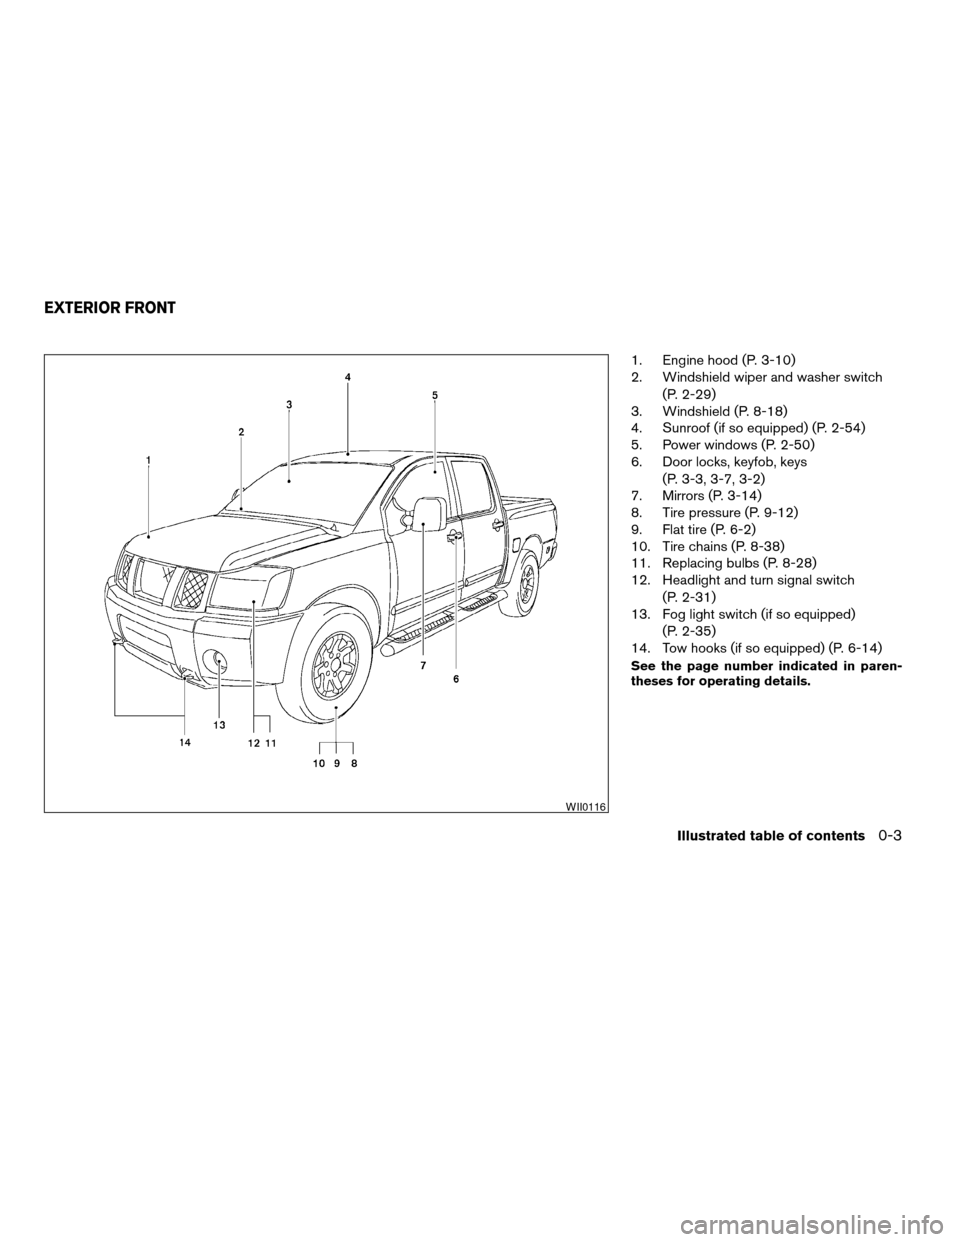 NISSAN TITAN 2008 1.G Owners Manual